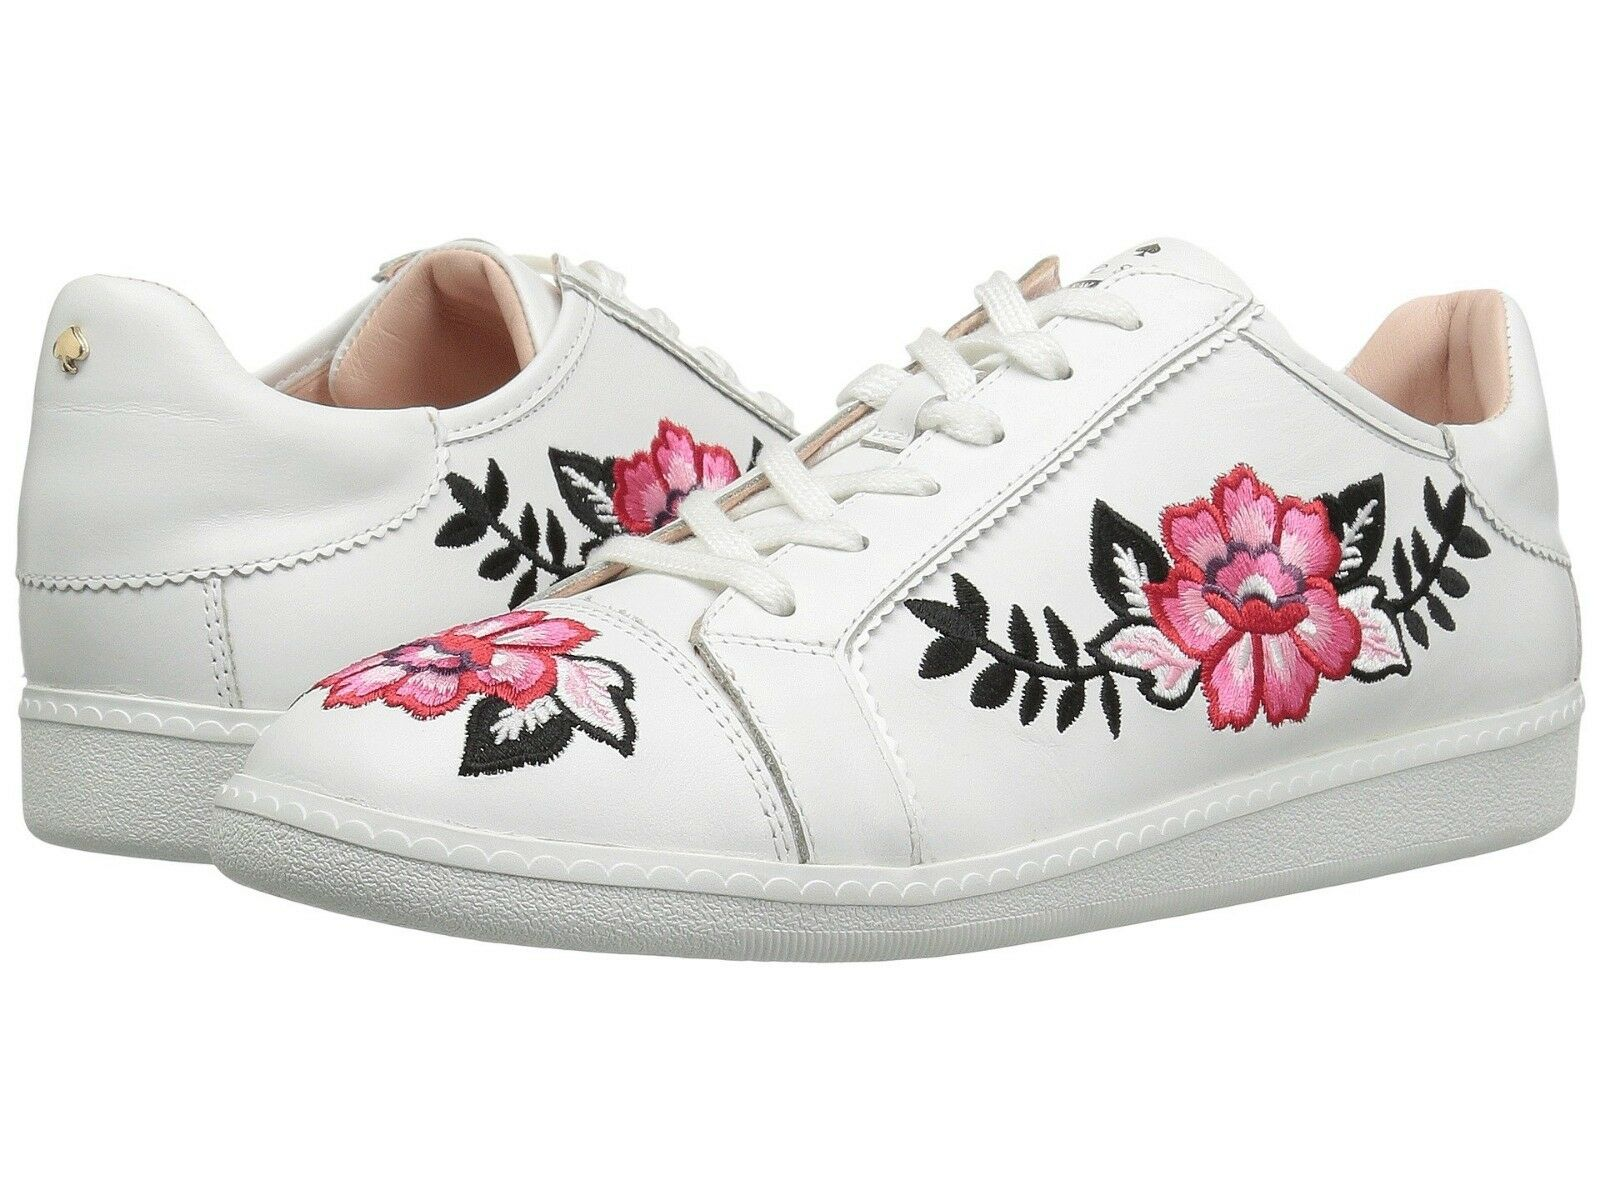 NEW Kate Spade White Floral Embroidered Leather Sneaker lace up Casual Flat Box